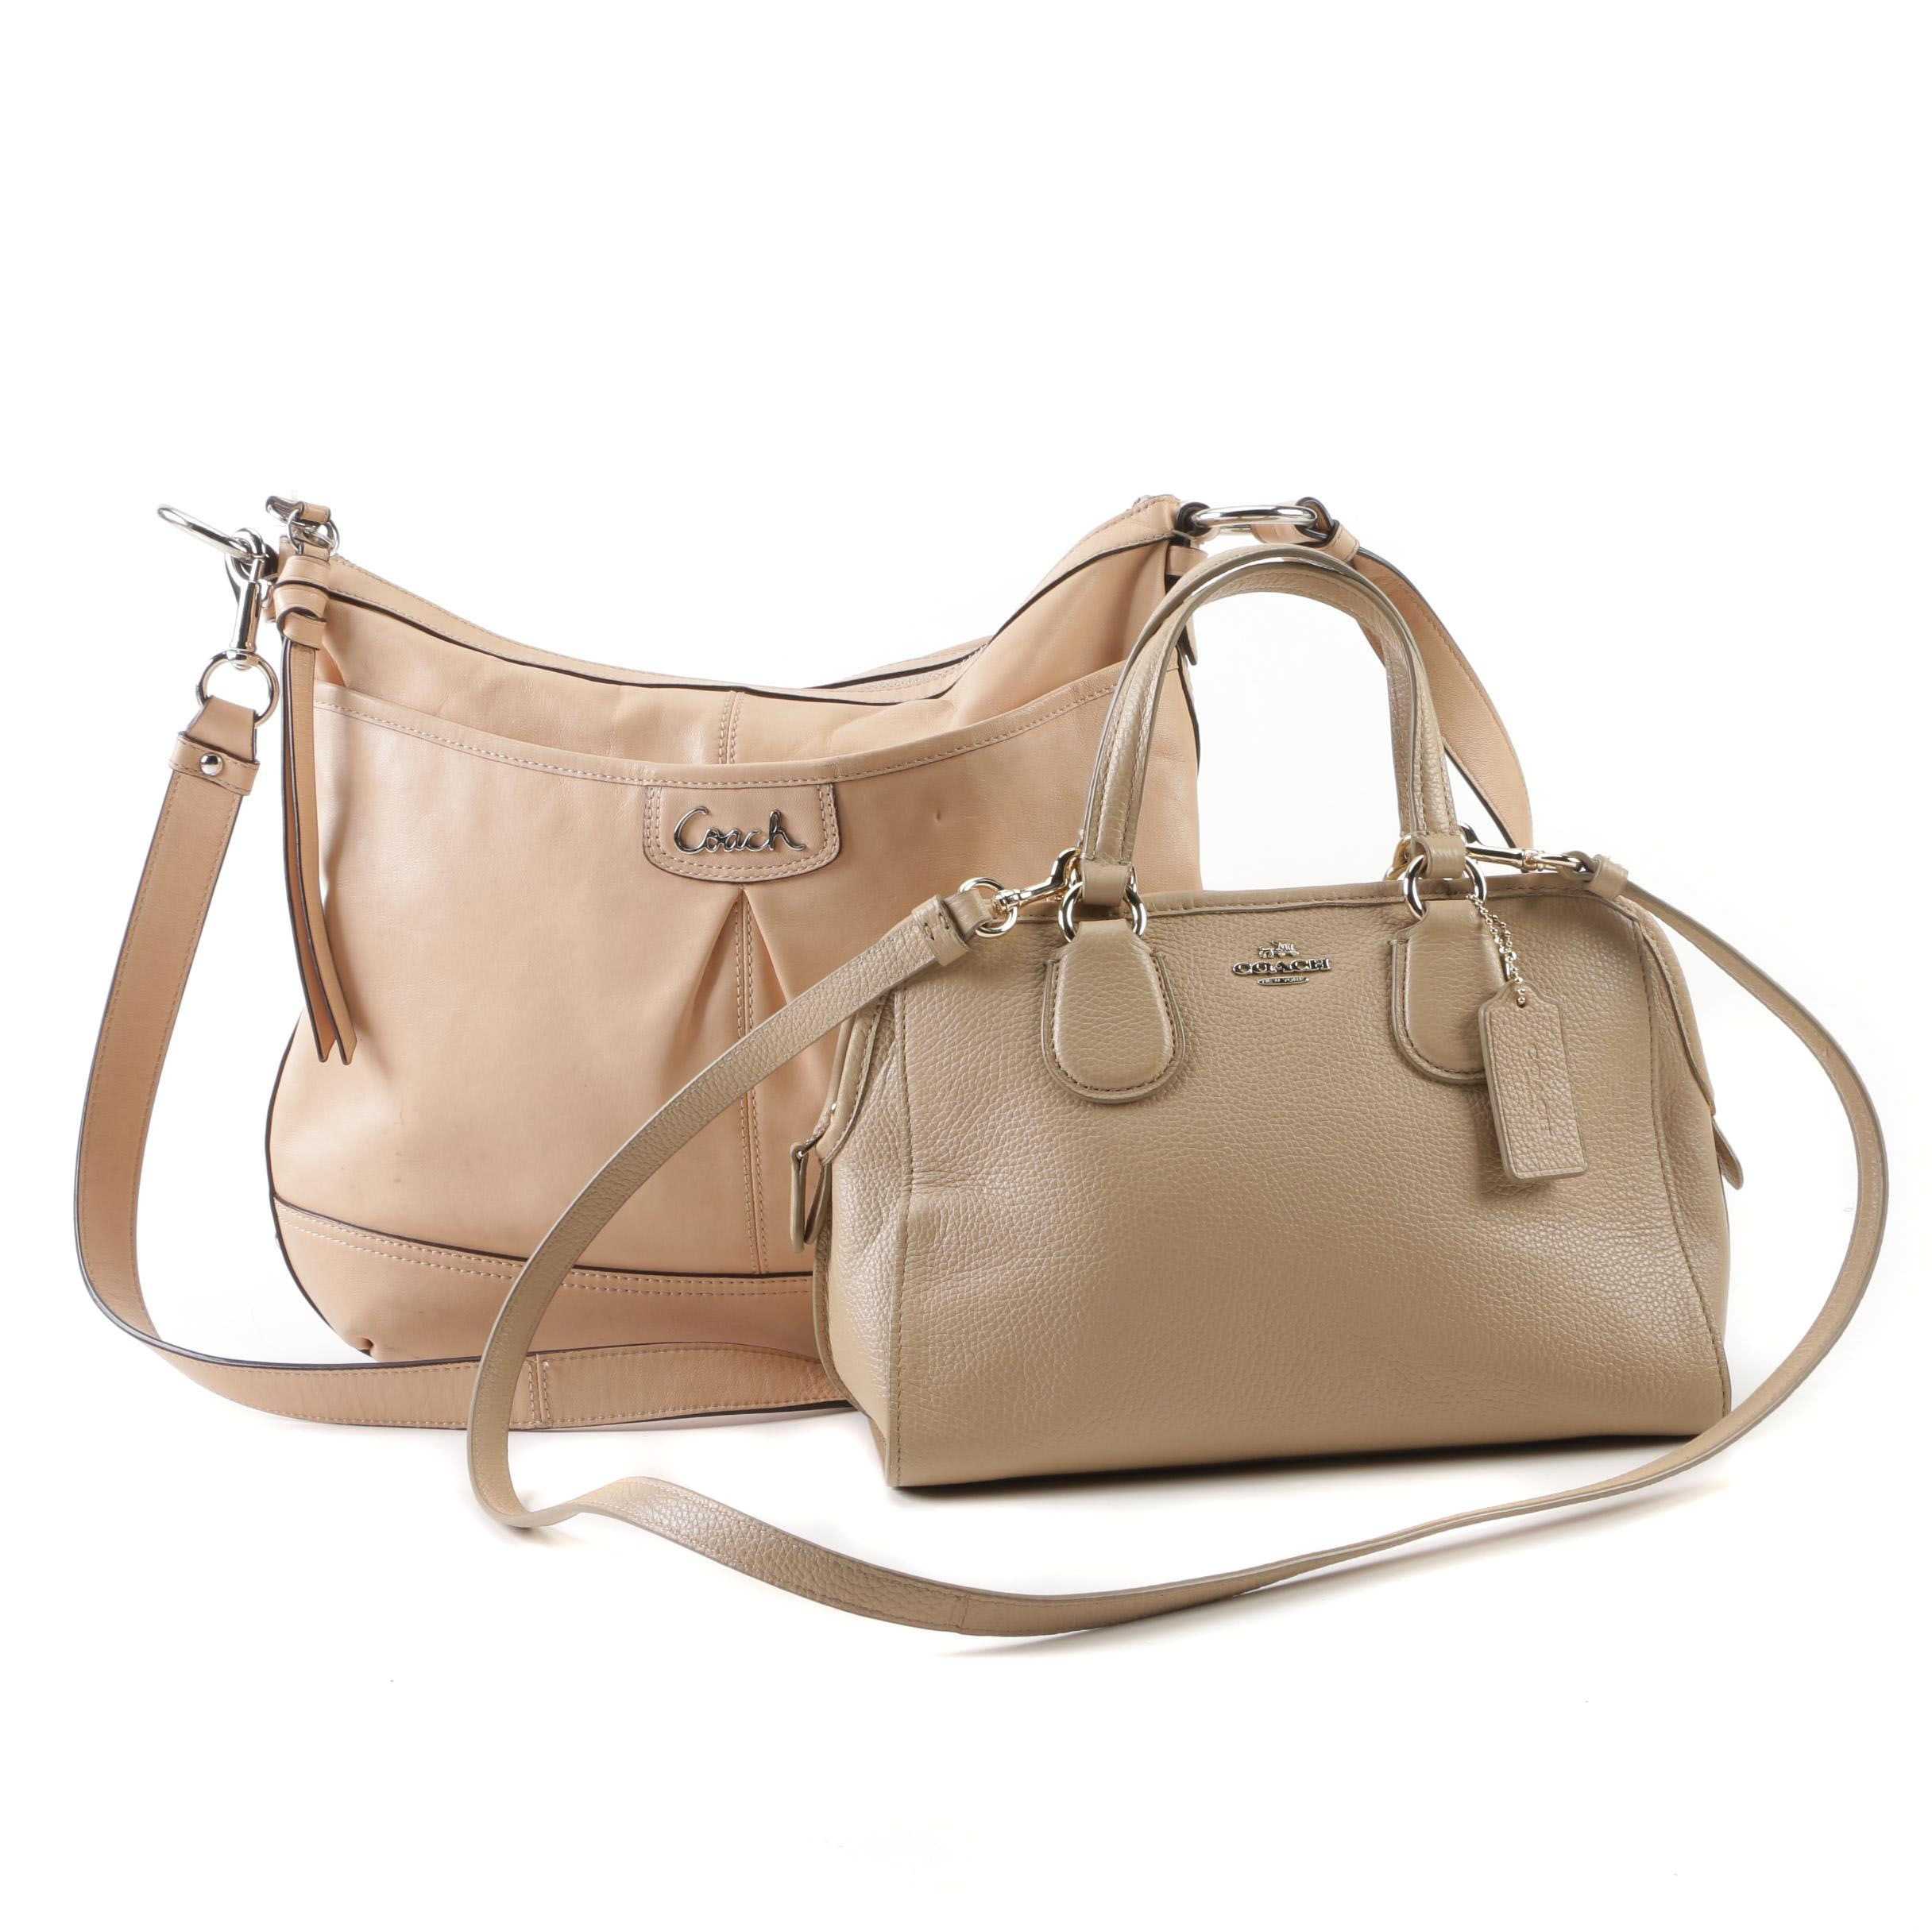 Coach Pebble Leather Mini Nolita Satchel and Beige Leather Park Shoulder Bag